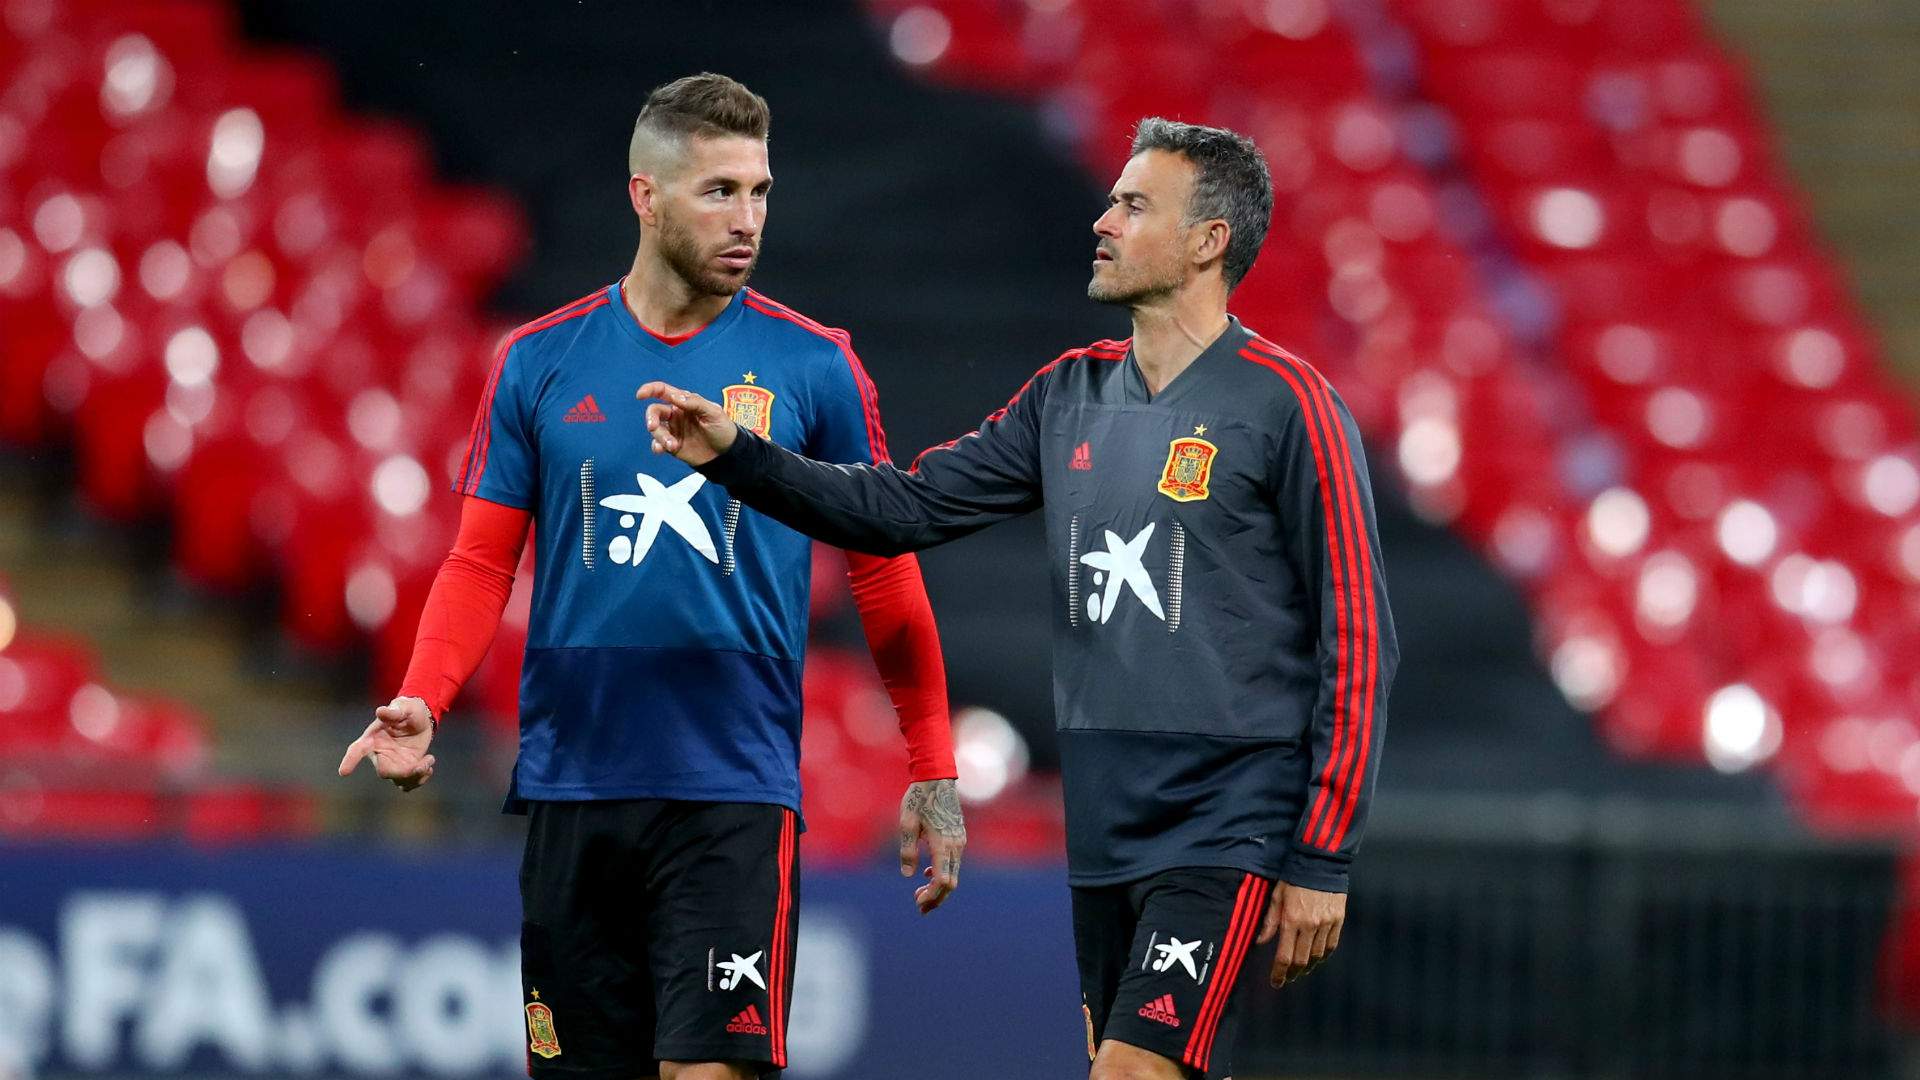 Sergio Ramos' honest message of support for Spain coach Luis Enrique